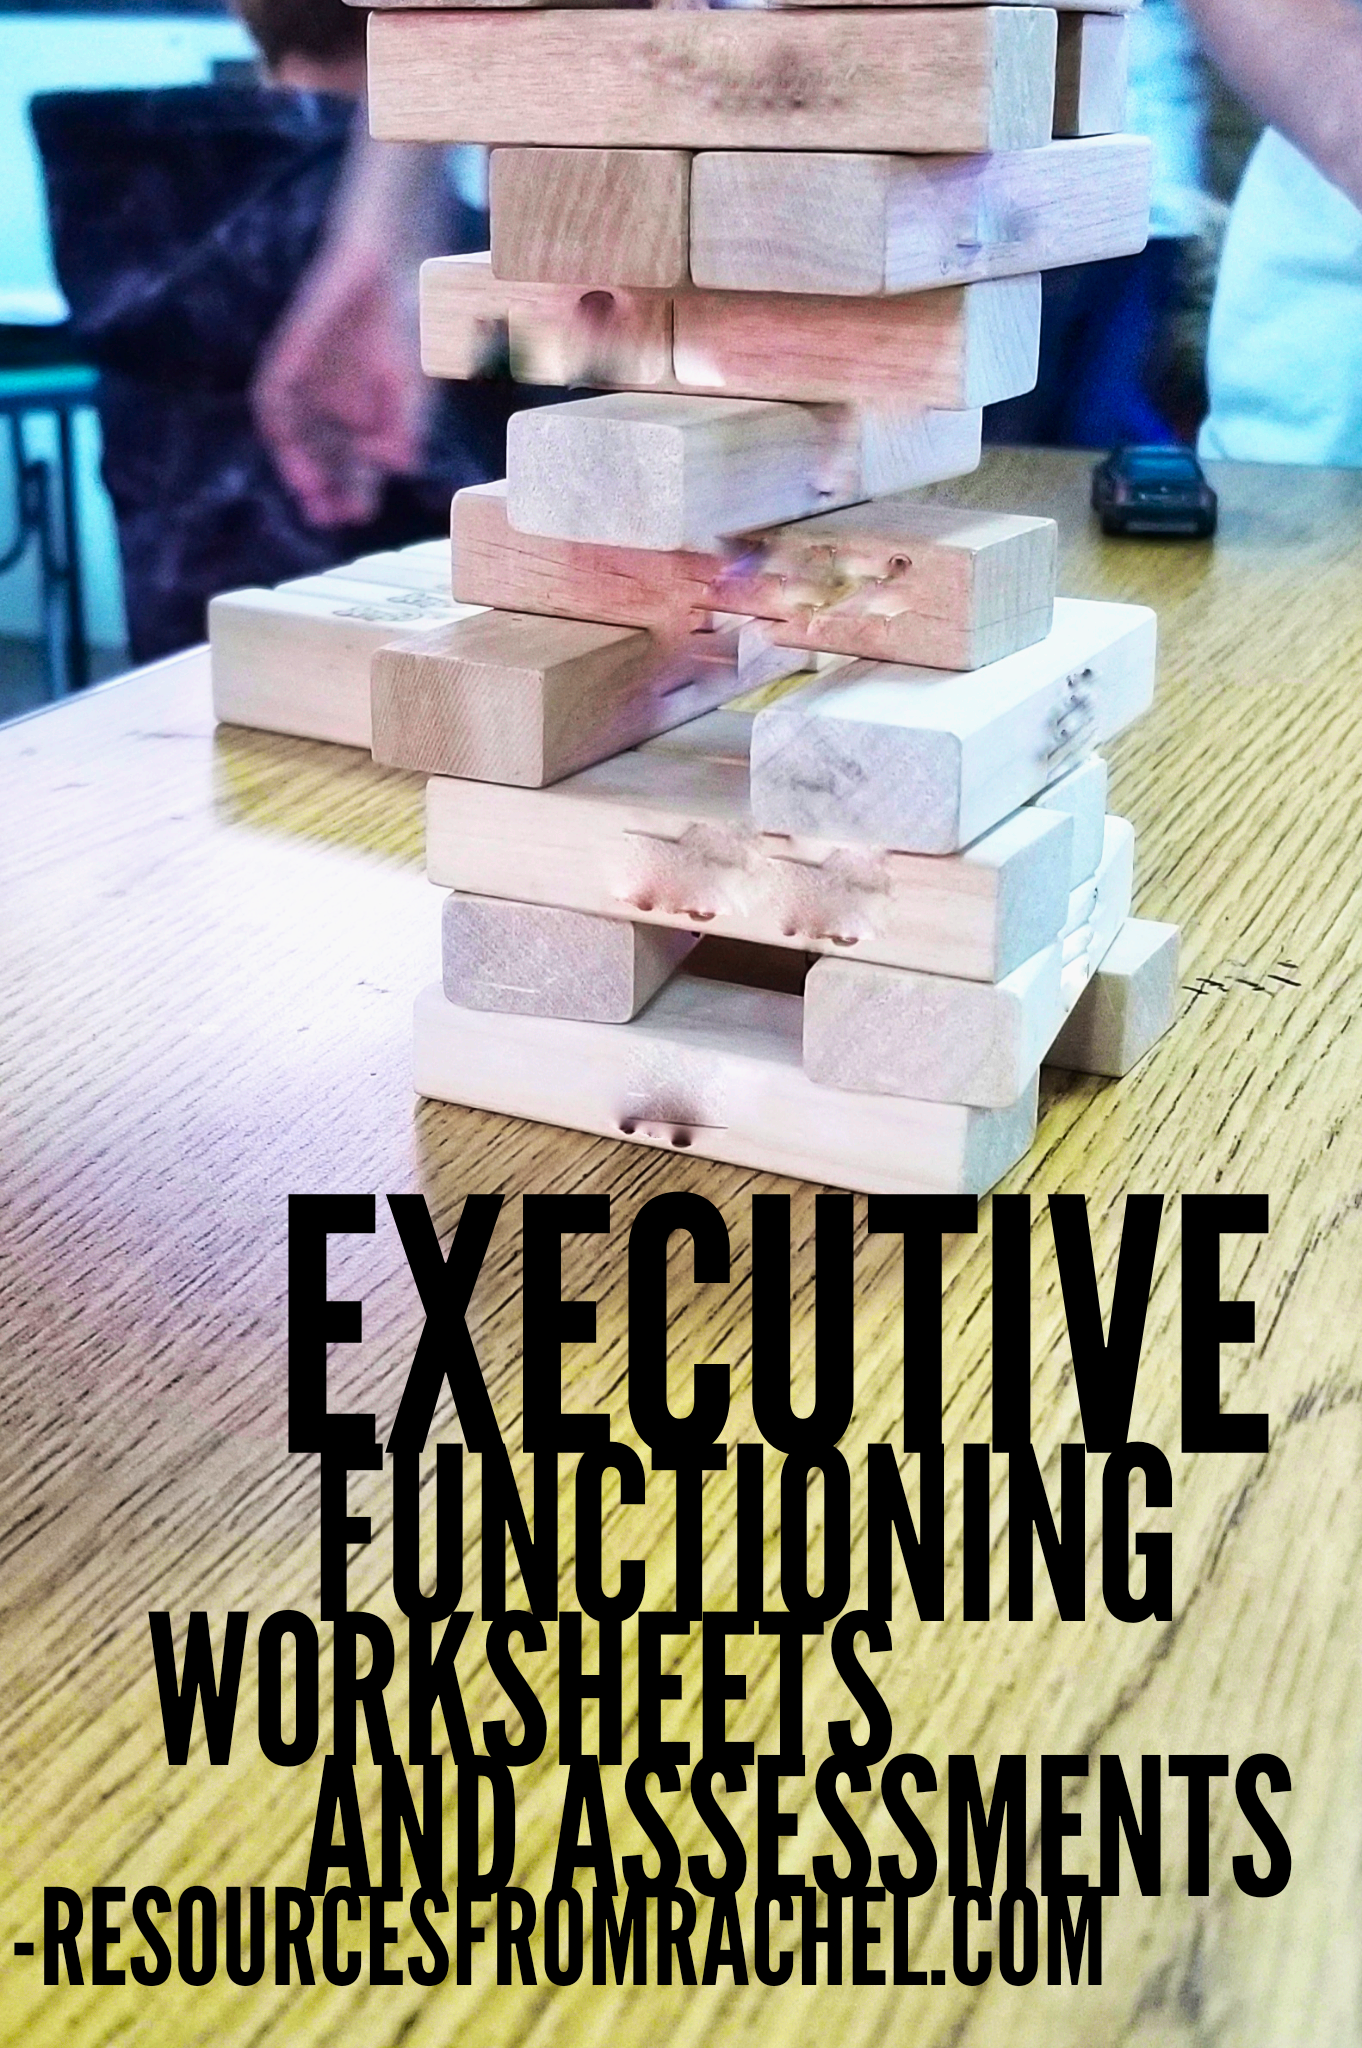 Executive Functioning Skills With Images